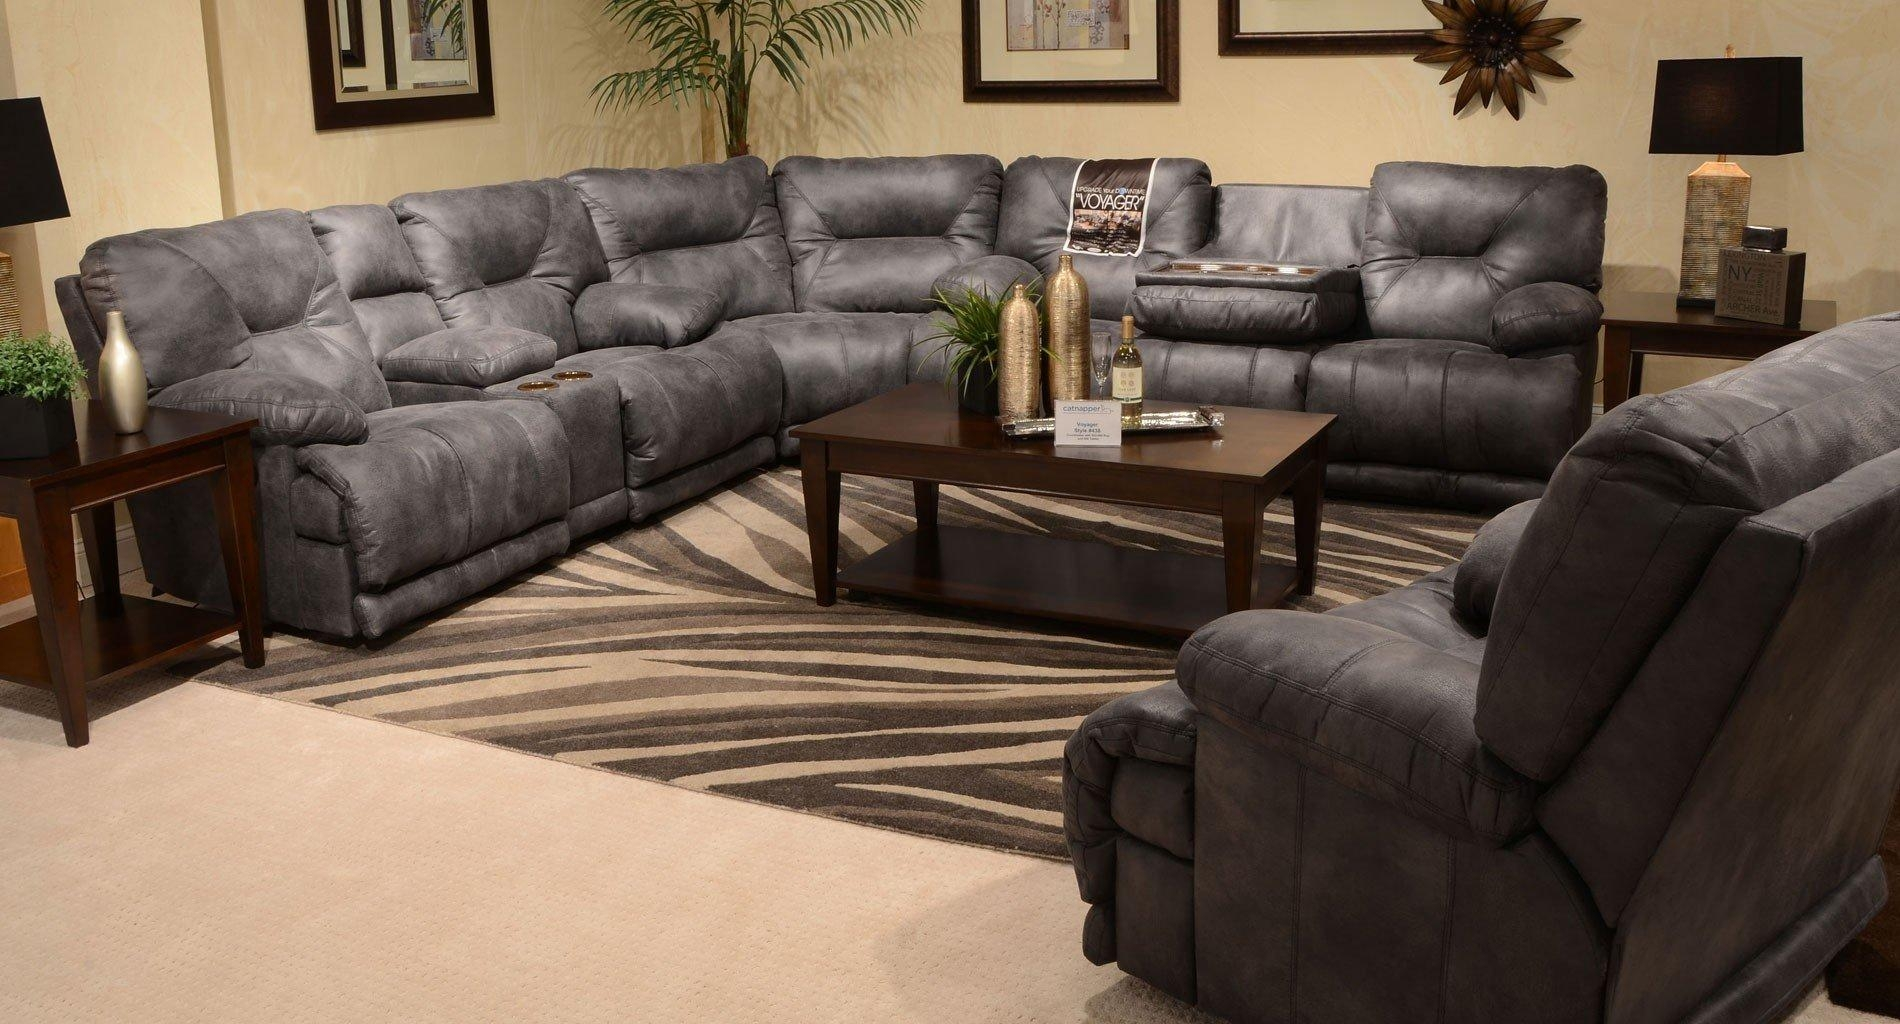 Voyager Reclining Sectional Set (Slate) Catnapper | Furniture Cart In Catnapper Reclining Sofas (View 6 of 20)